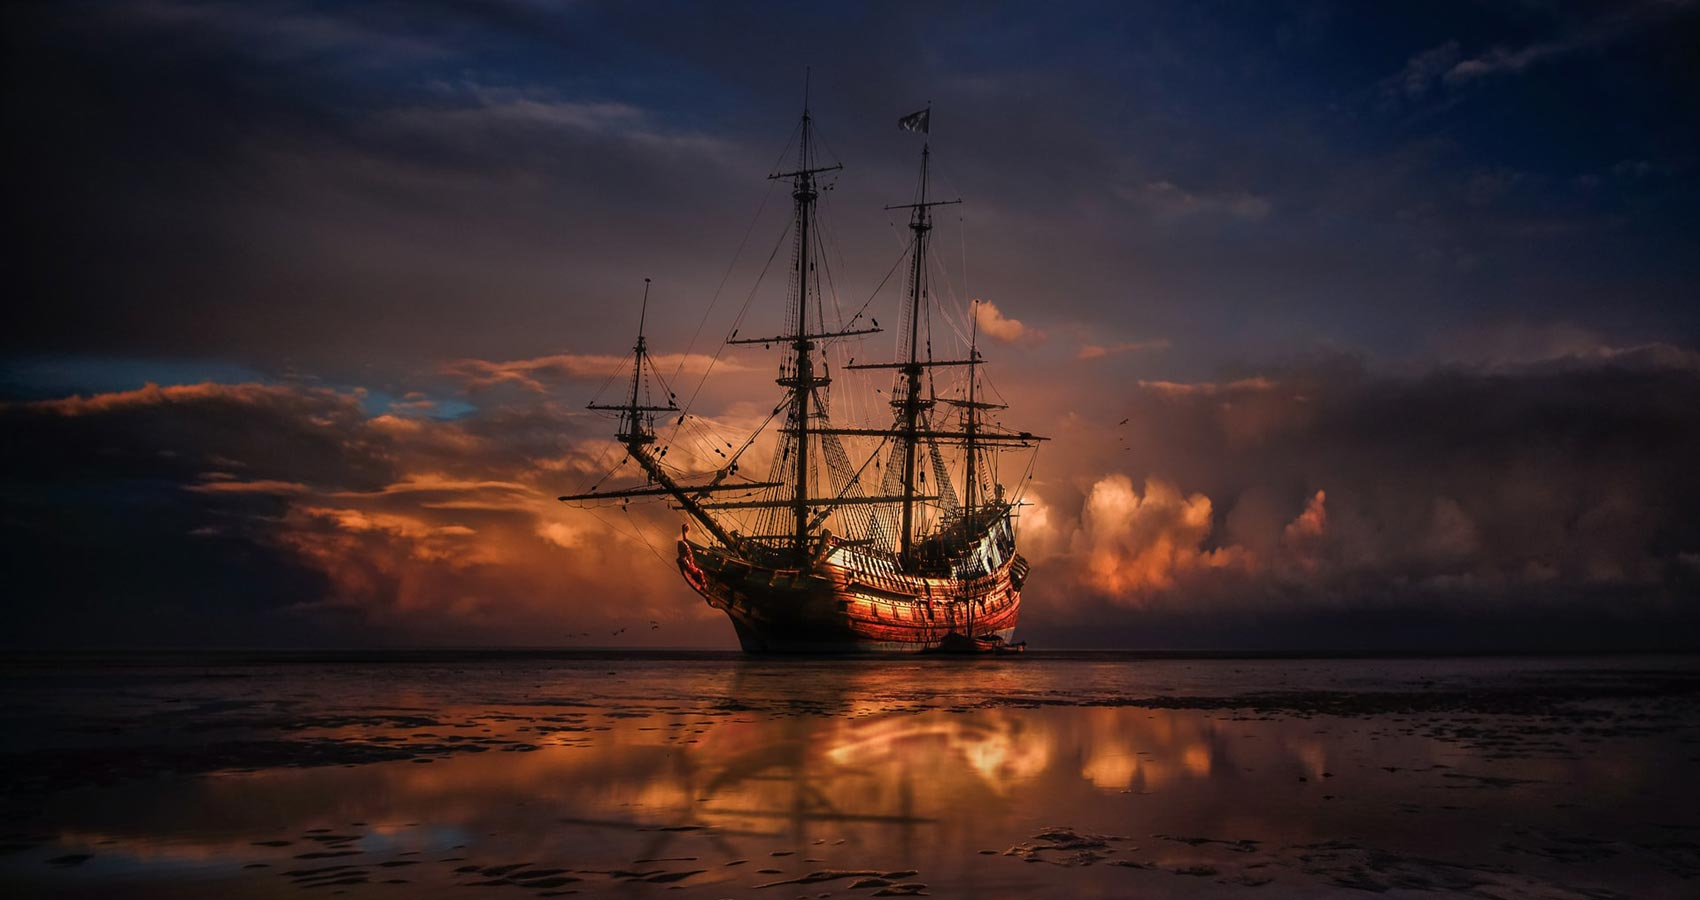 For Captain Ahab, a poem by Maciej Pająk (Matthew) at Spillwords.com